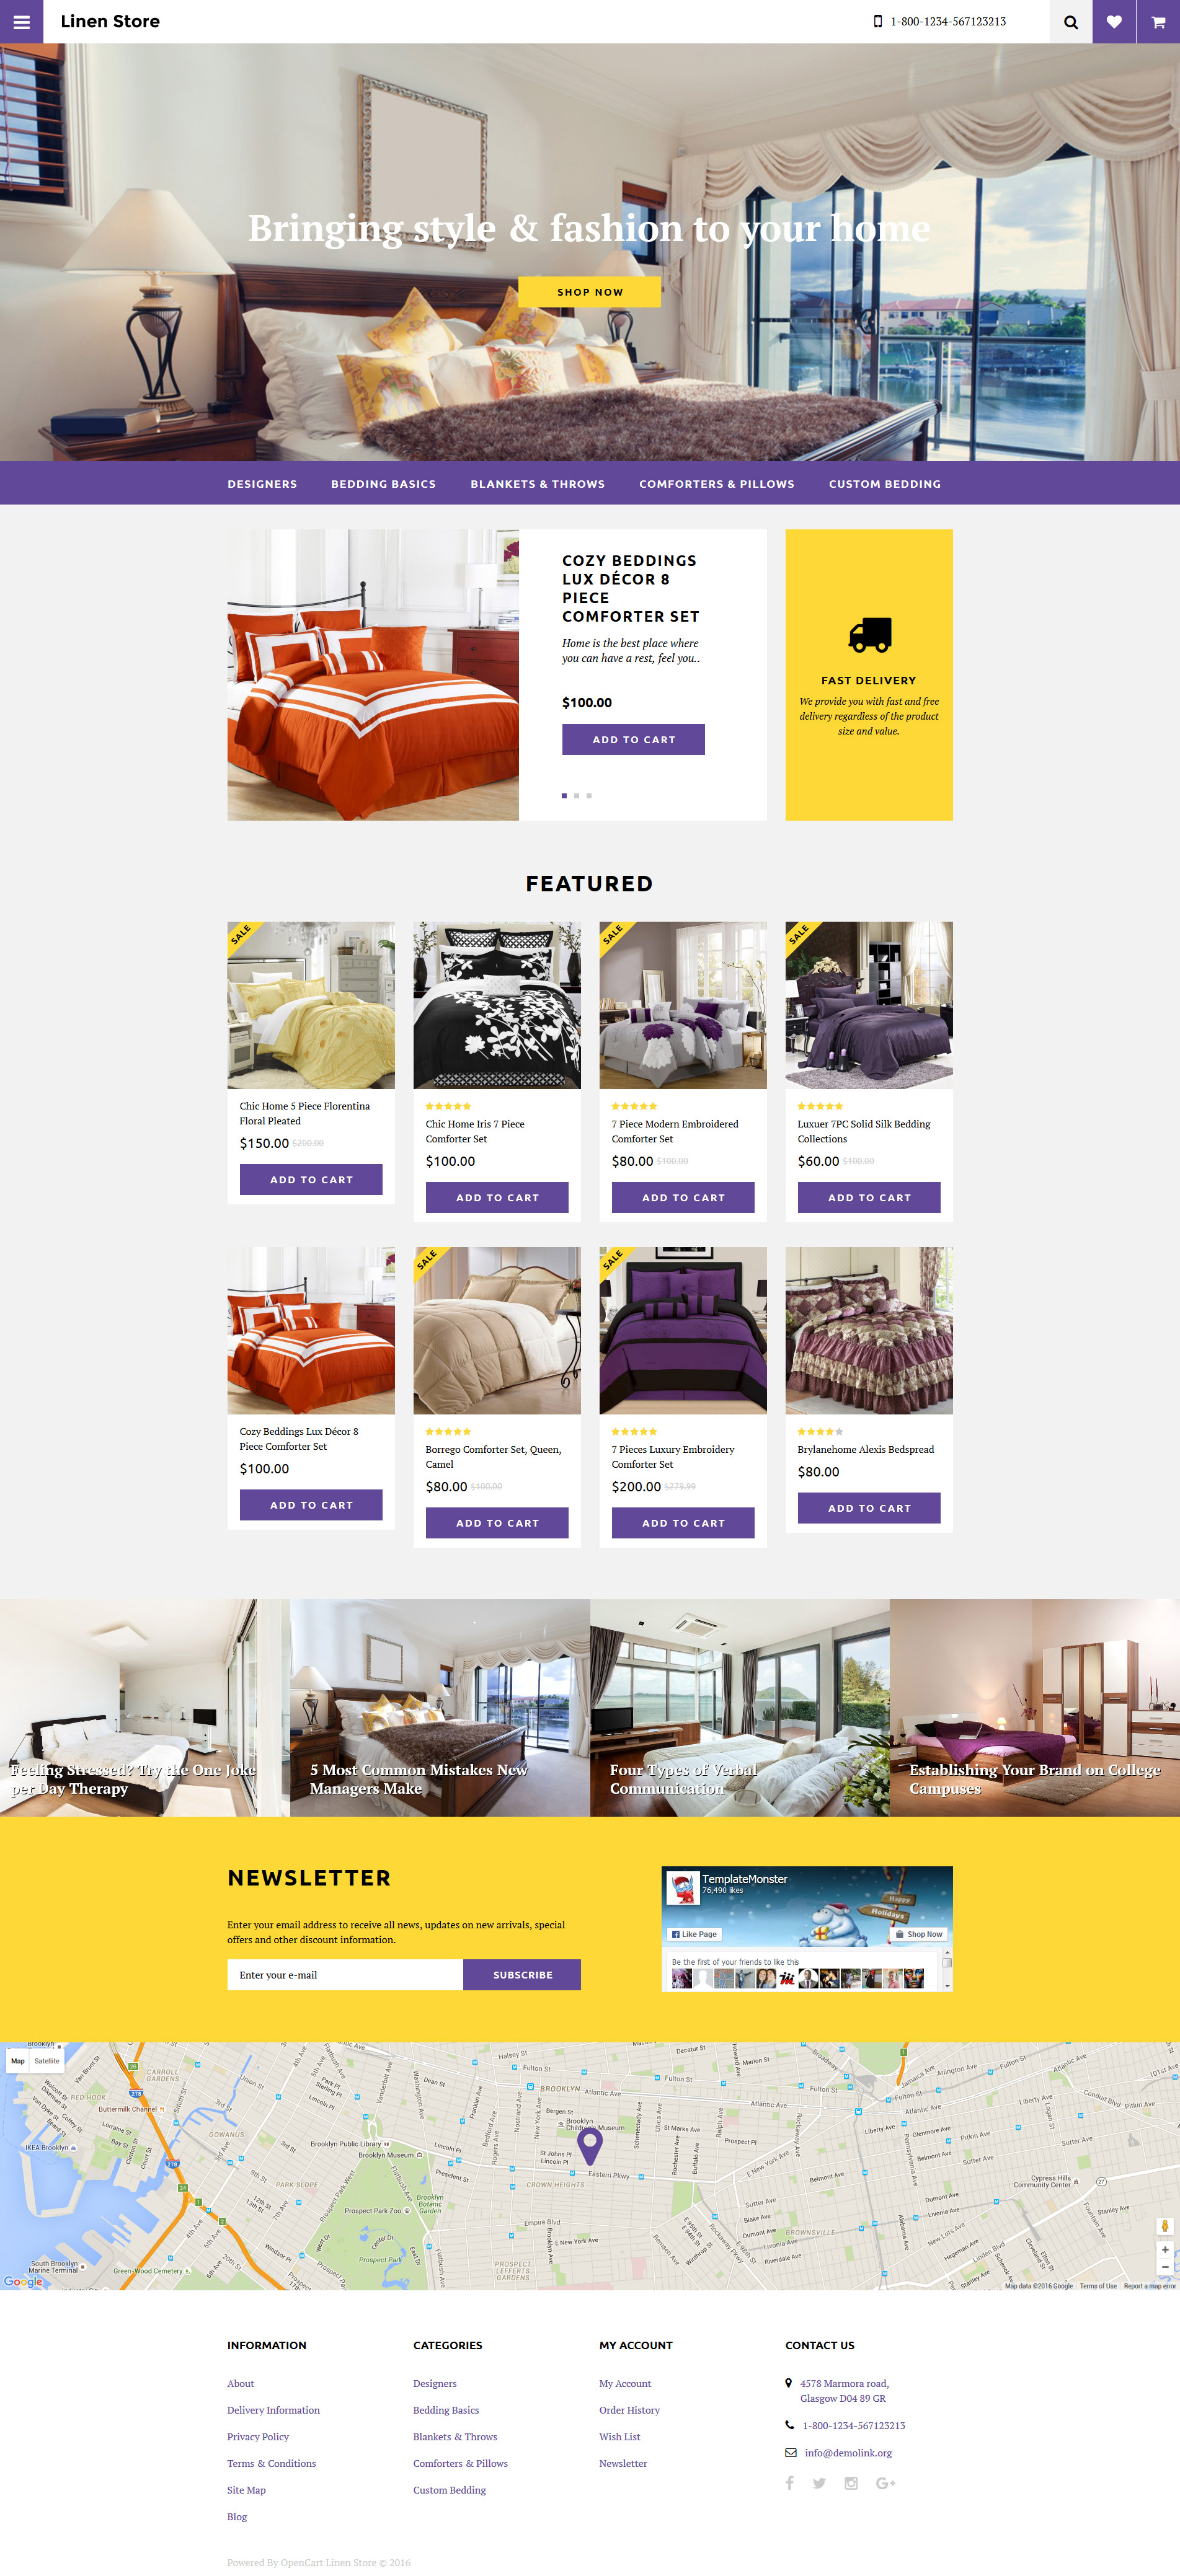 Bed linen opencart theme for Opencart bookstore template